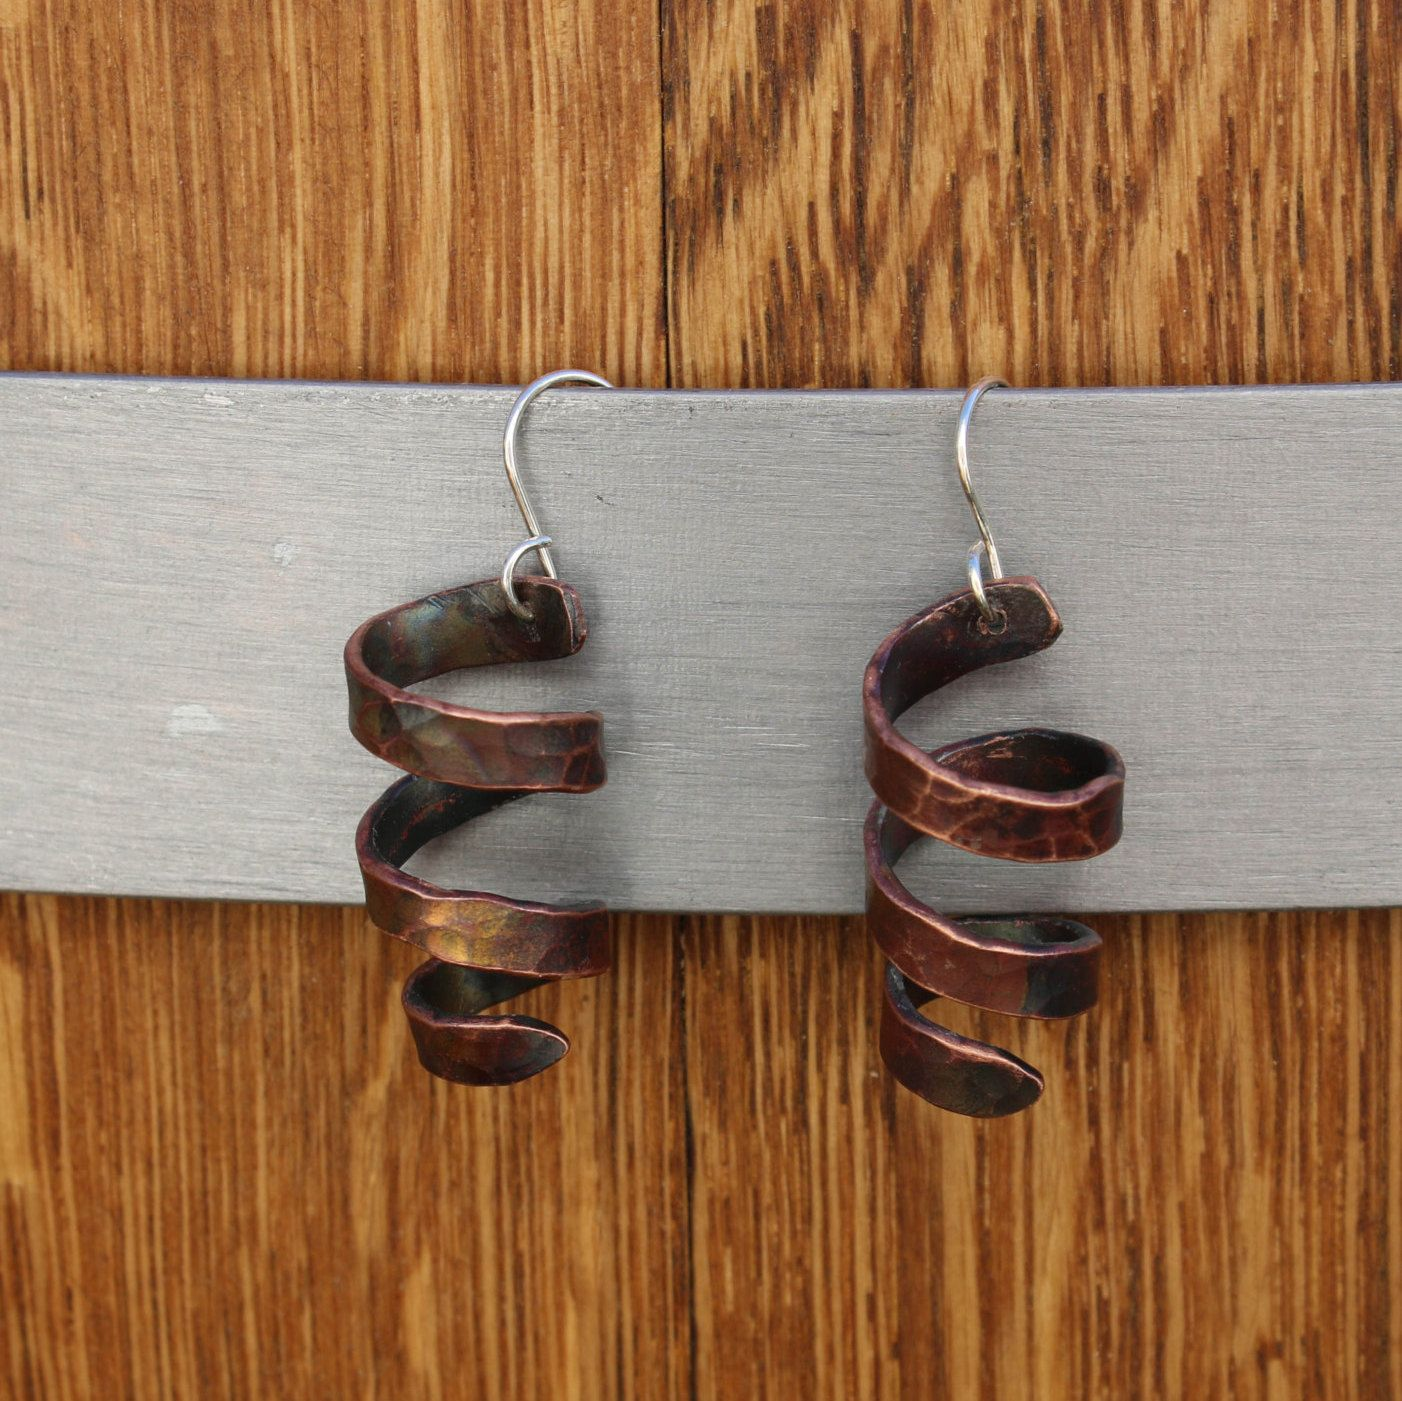 Copper Stairway - 8 gauge copper wire fired and folded to form a ...